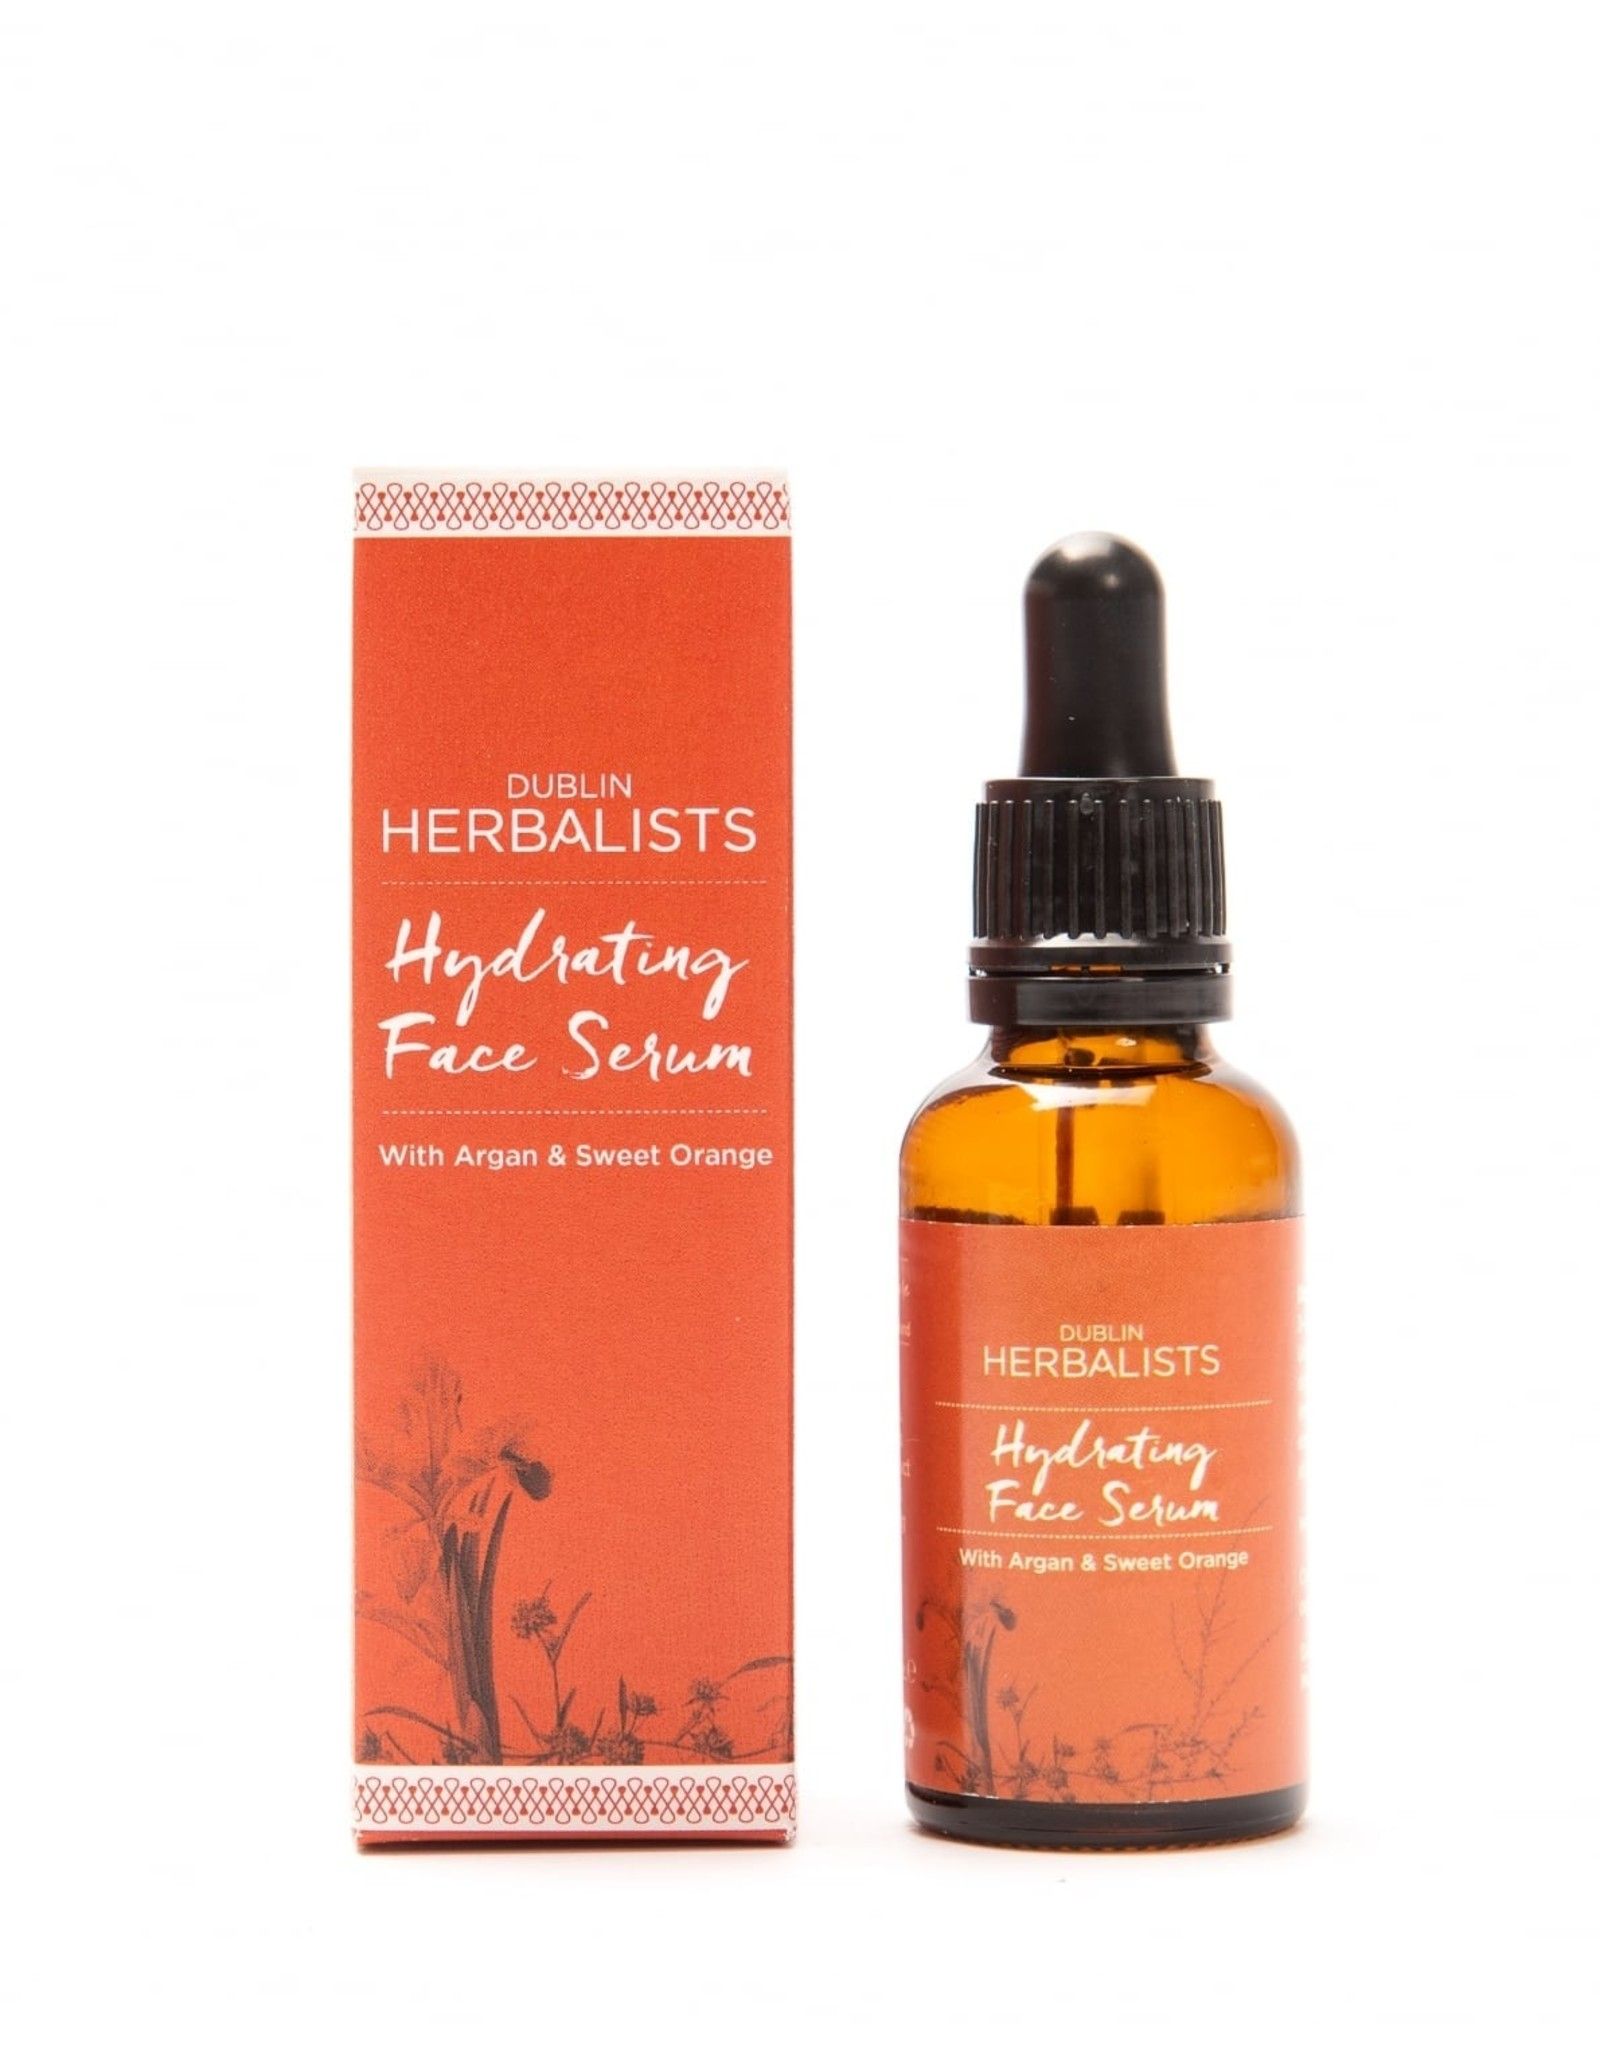 Dublin Herbalists Hydrating Face Serum by Dublin Herbalists